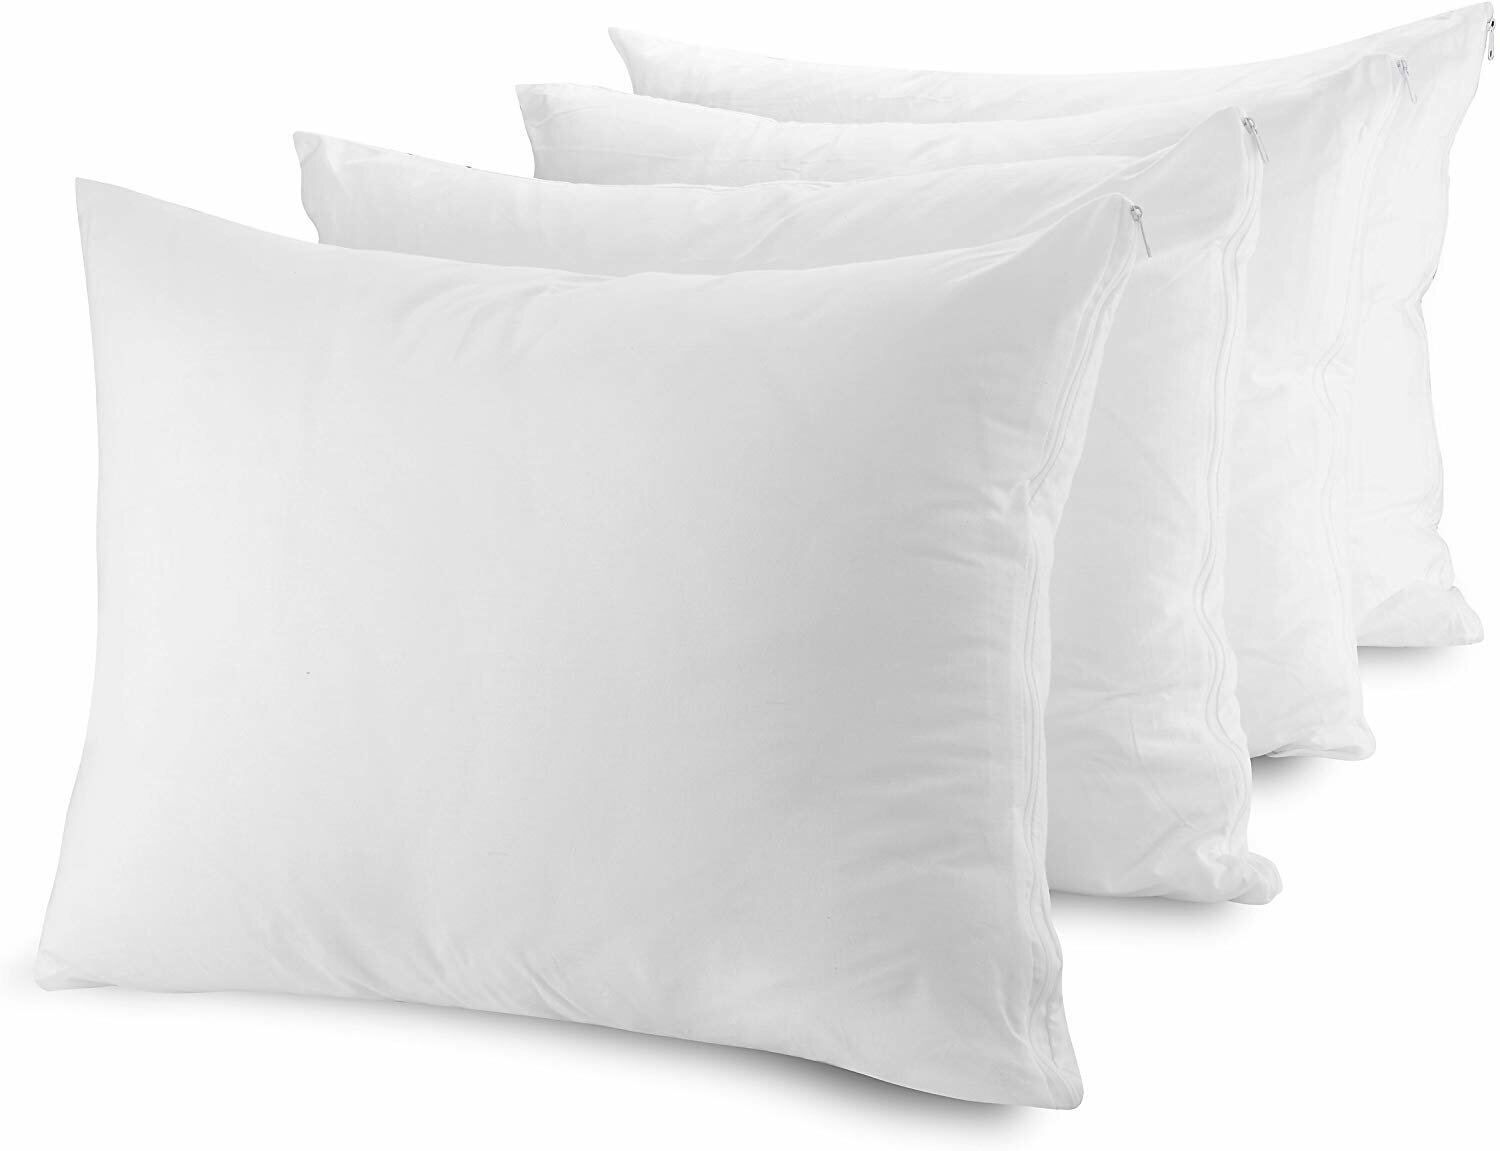 EZ Dreams Queen Size Zippered Pillow Protector Quick Dry Stay Cool Microfiber